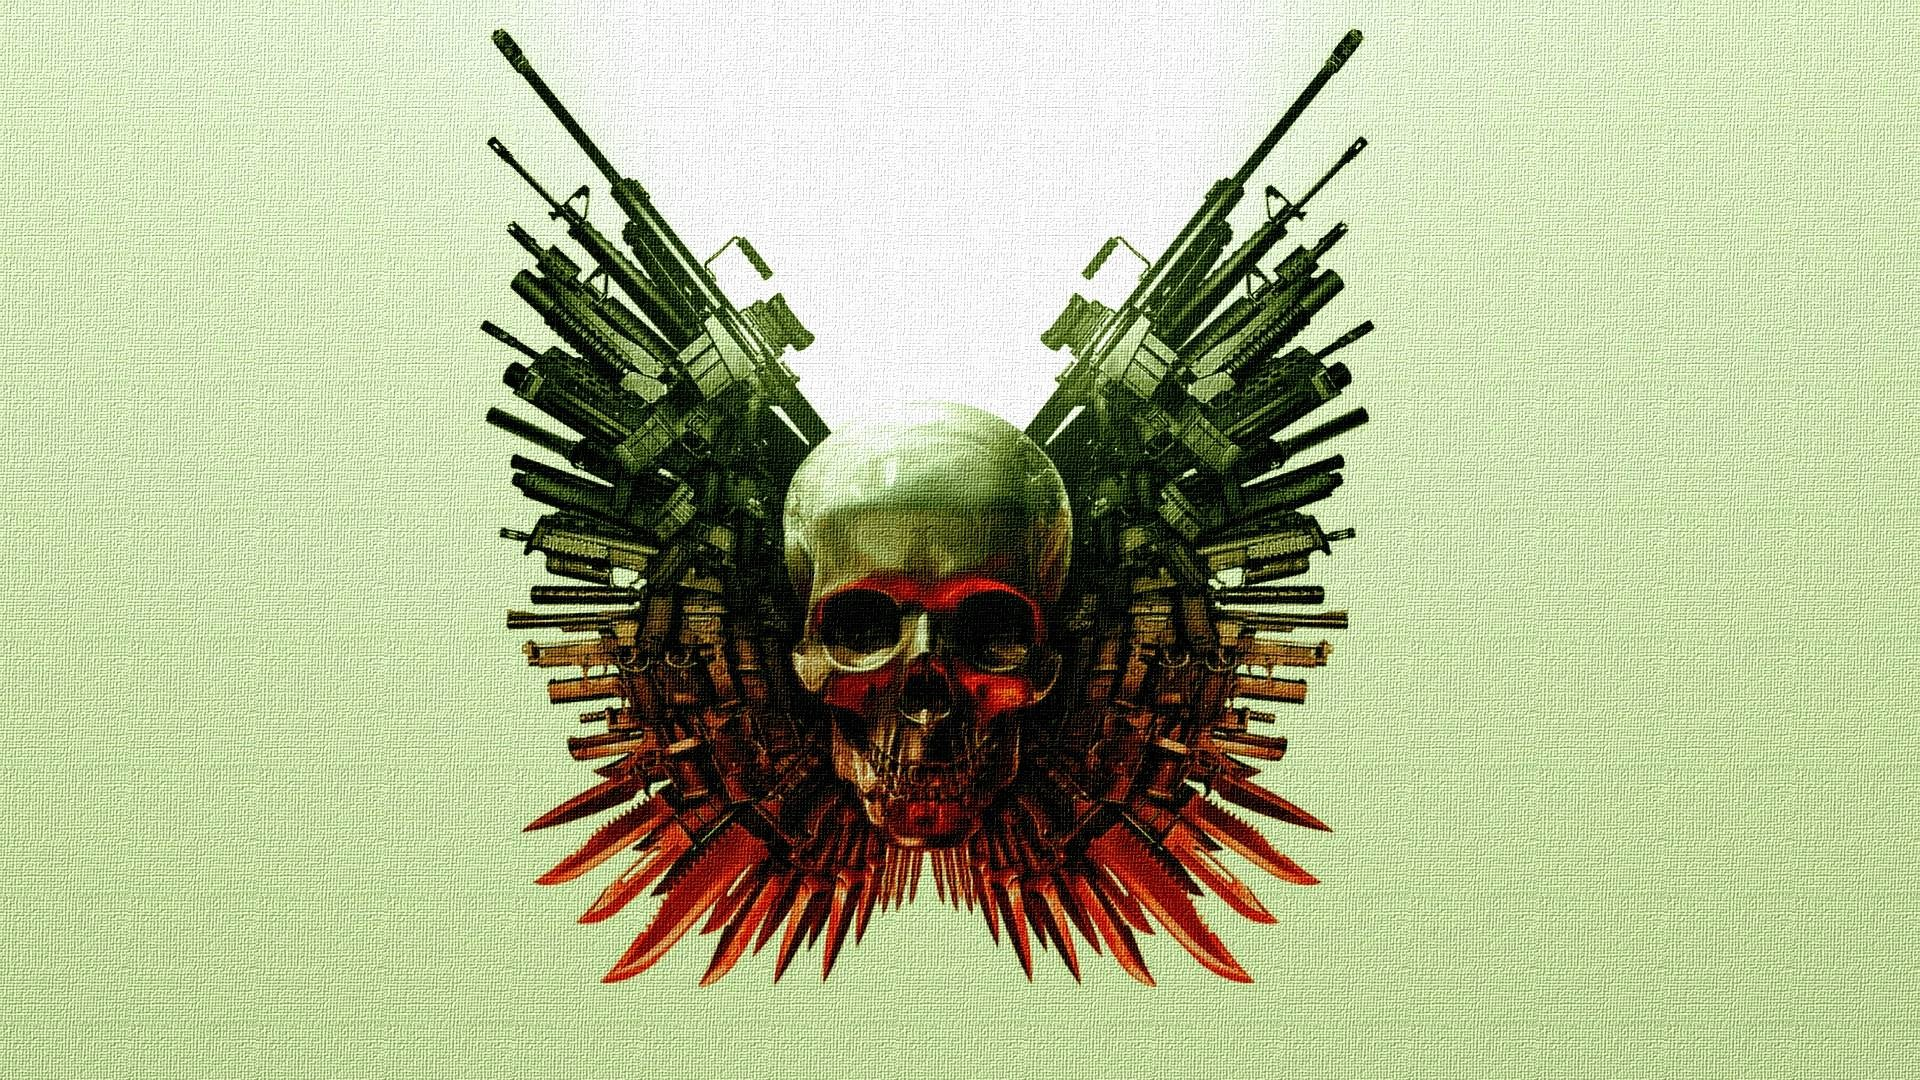 cool-guns-1080p-high-quality-by-Taft-Gill-wallpaper-wp3804009